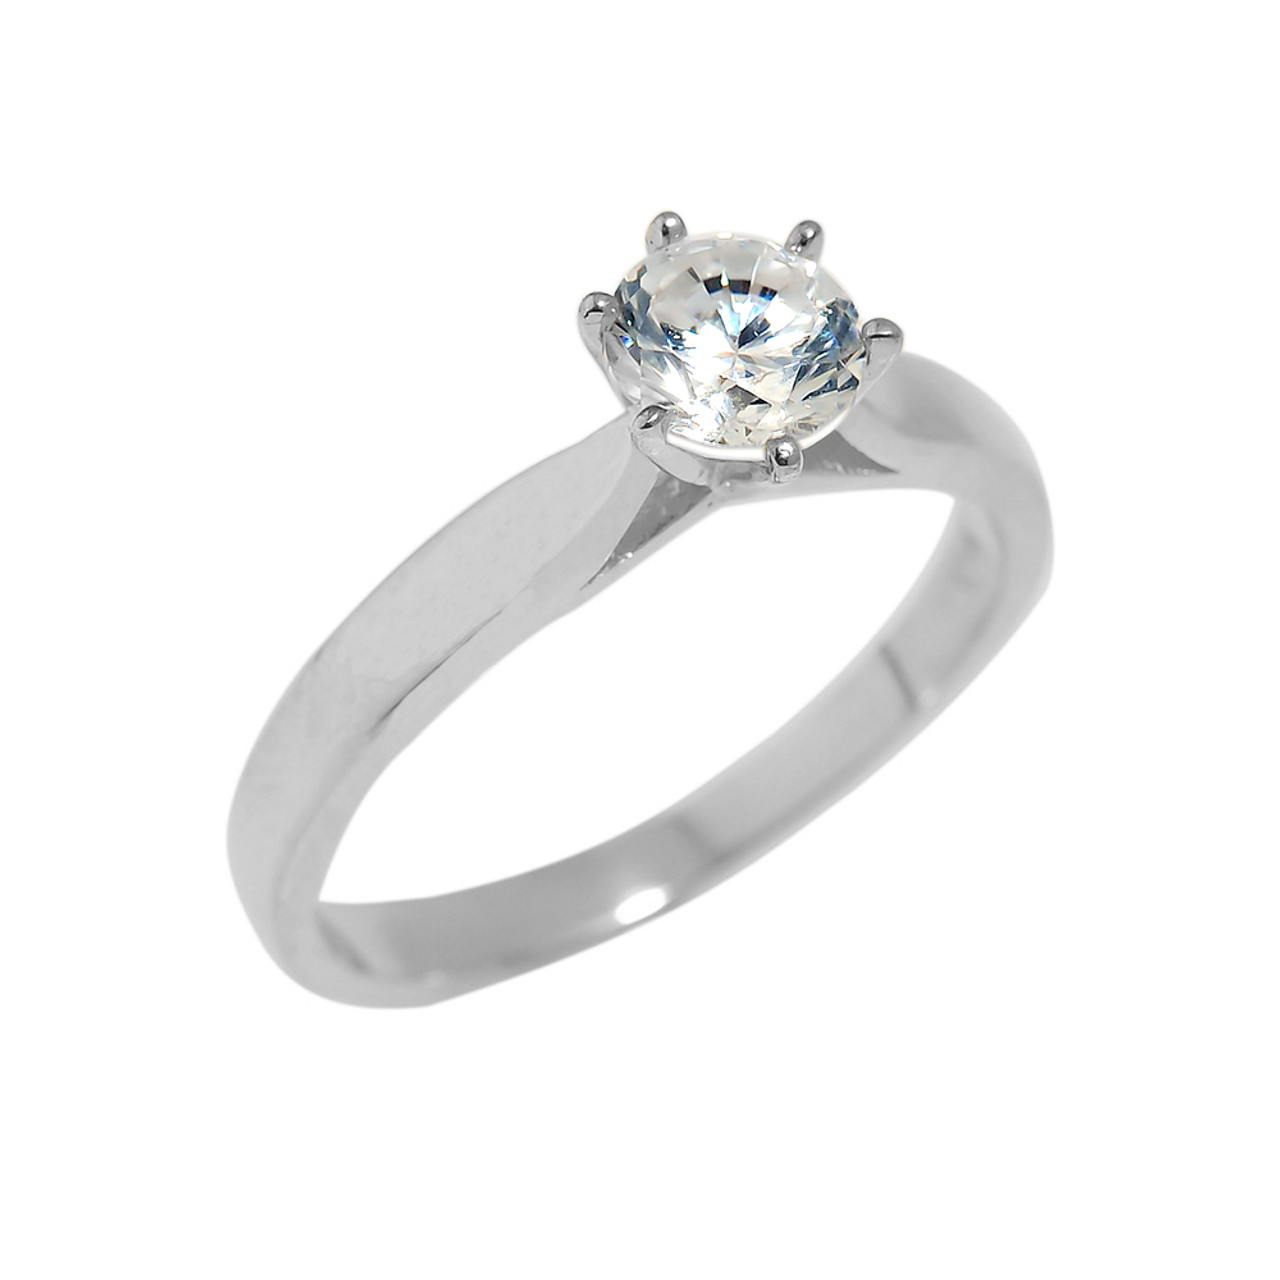 21510276558829 Solid White Gold Cubic Zirconia Engagement Ring | Engagement Rings